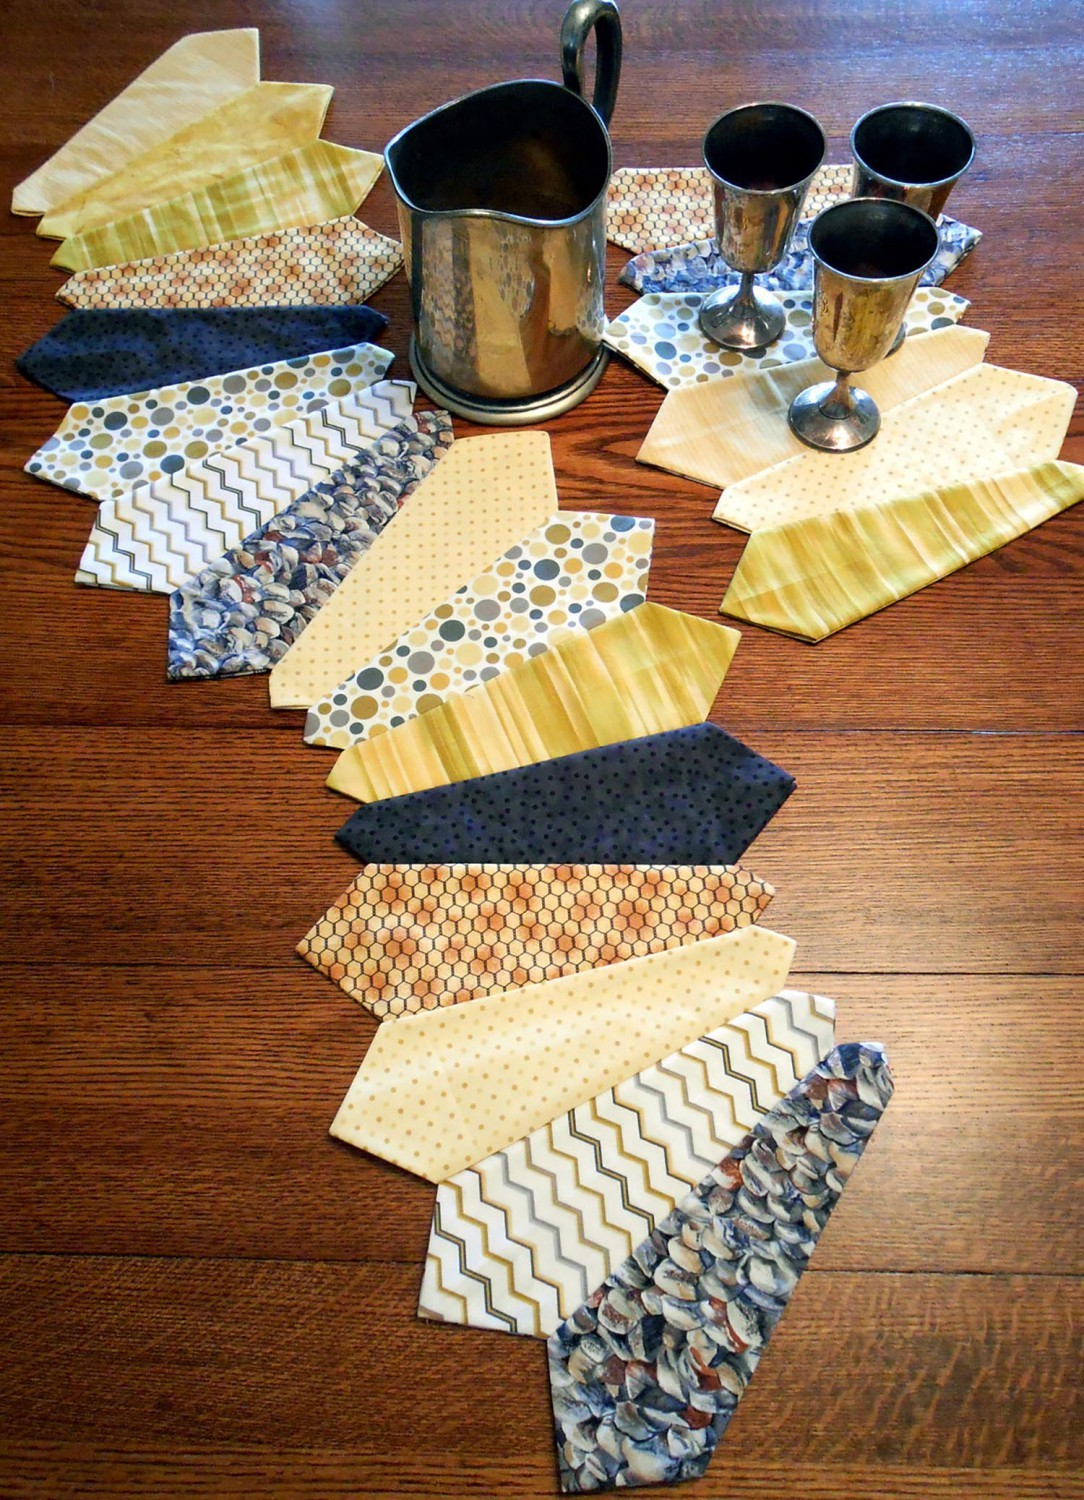 Dining Dresdens Pattern